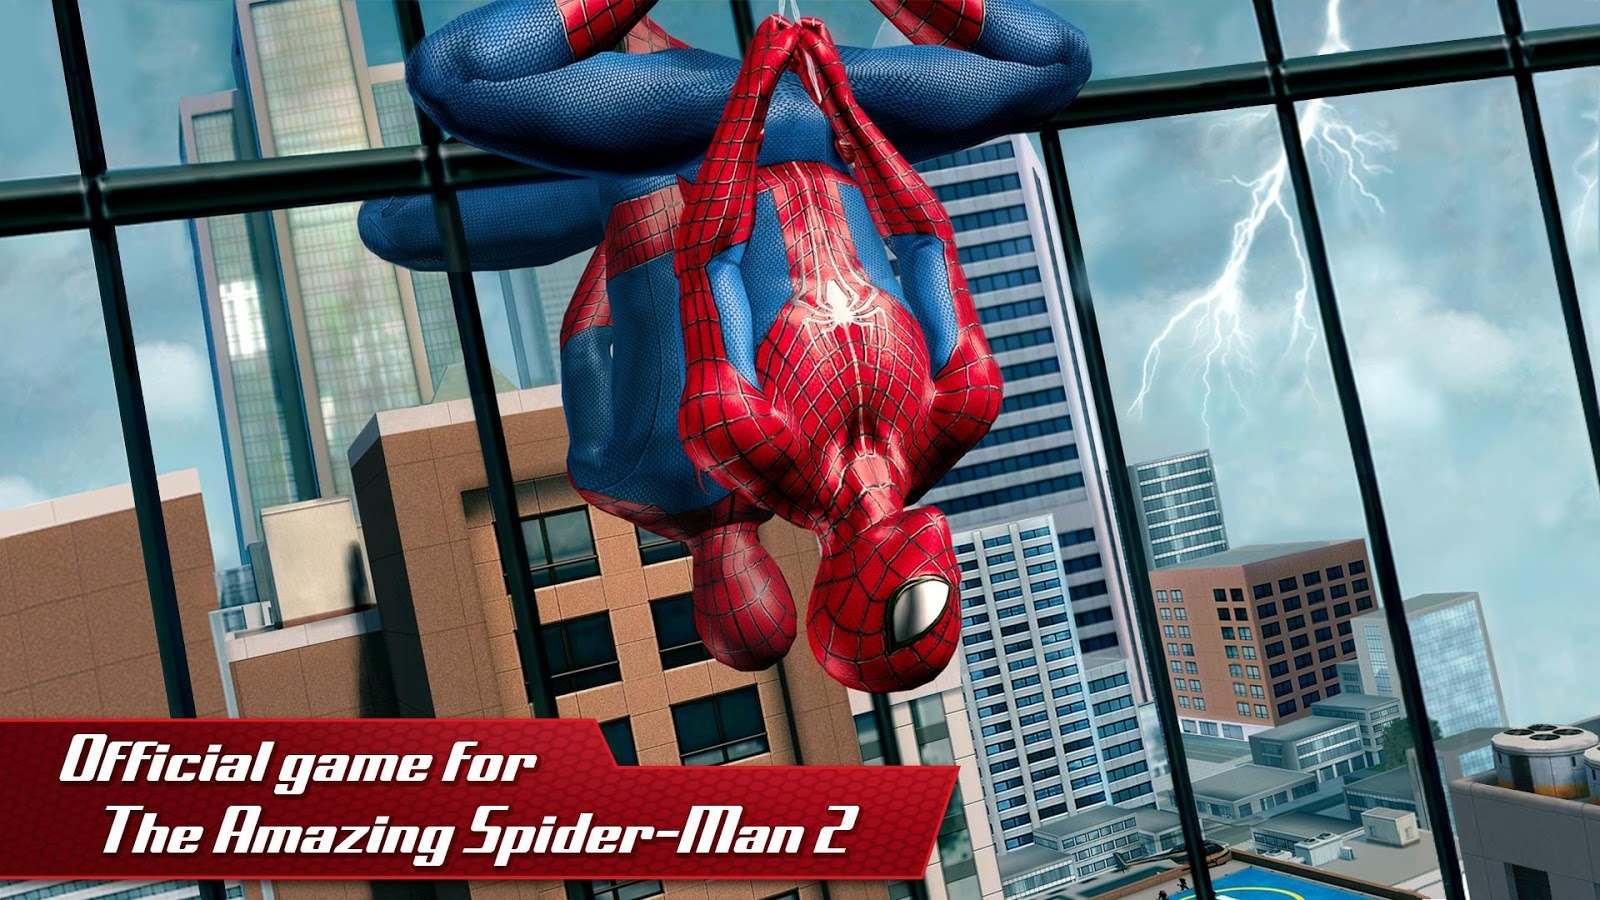 Spiderman 4 games online play free the amazing spider man 2